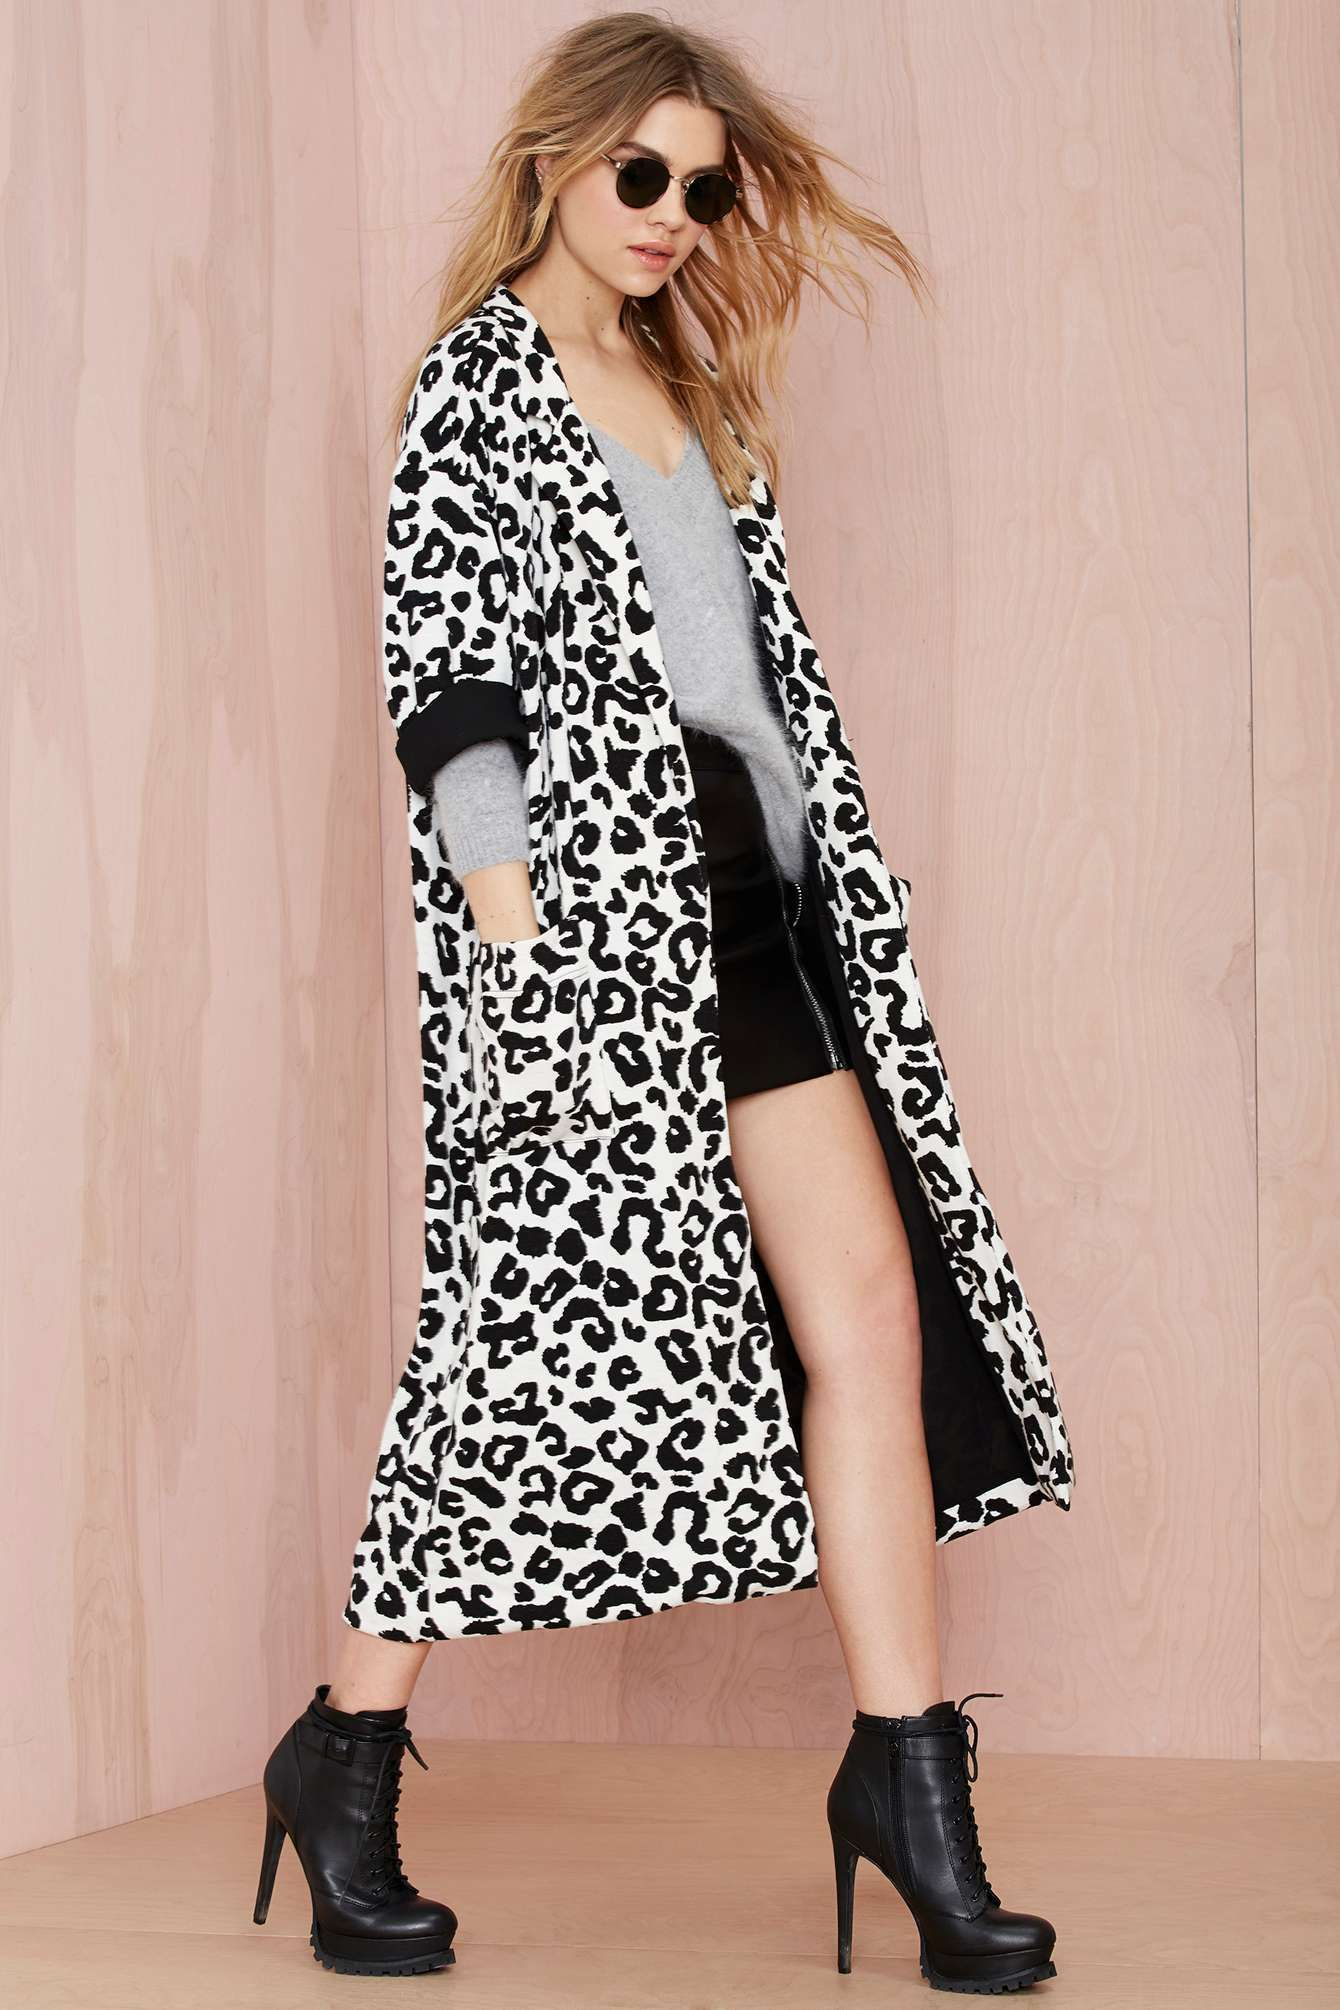 Wild Child Duster Coat | Shop What's New at Nasty Gal